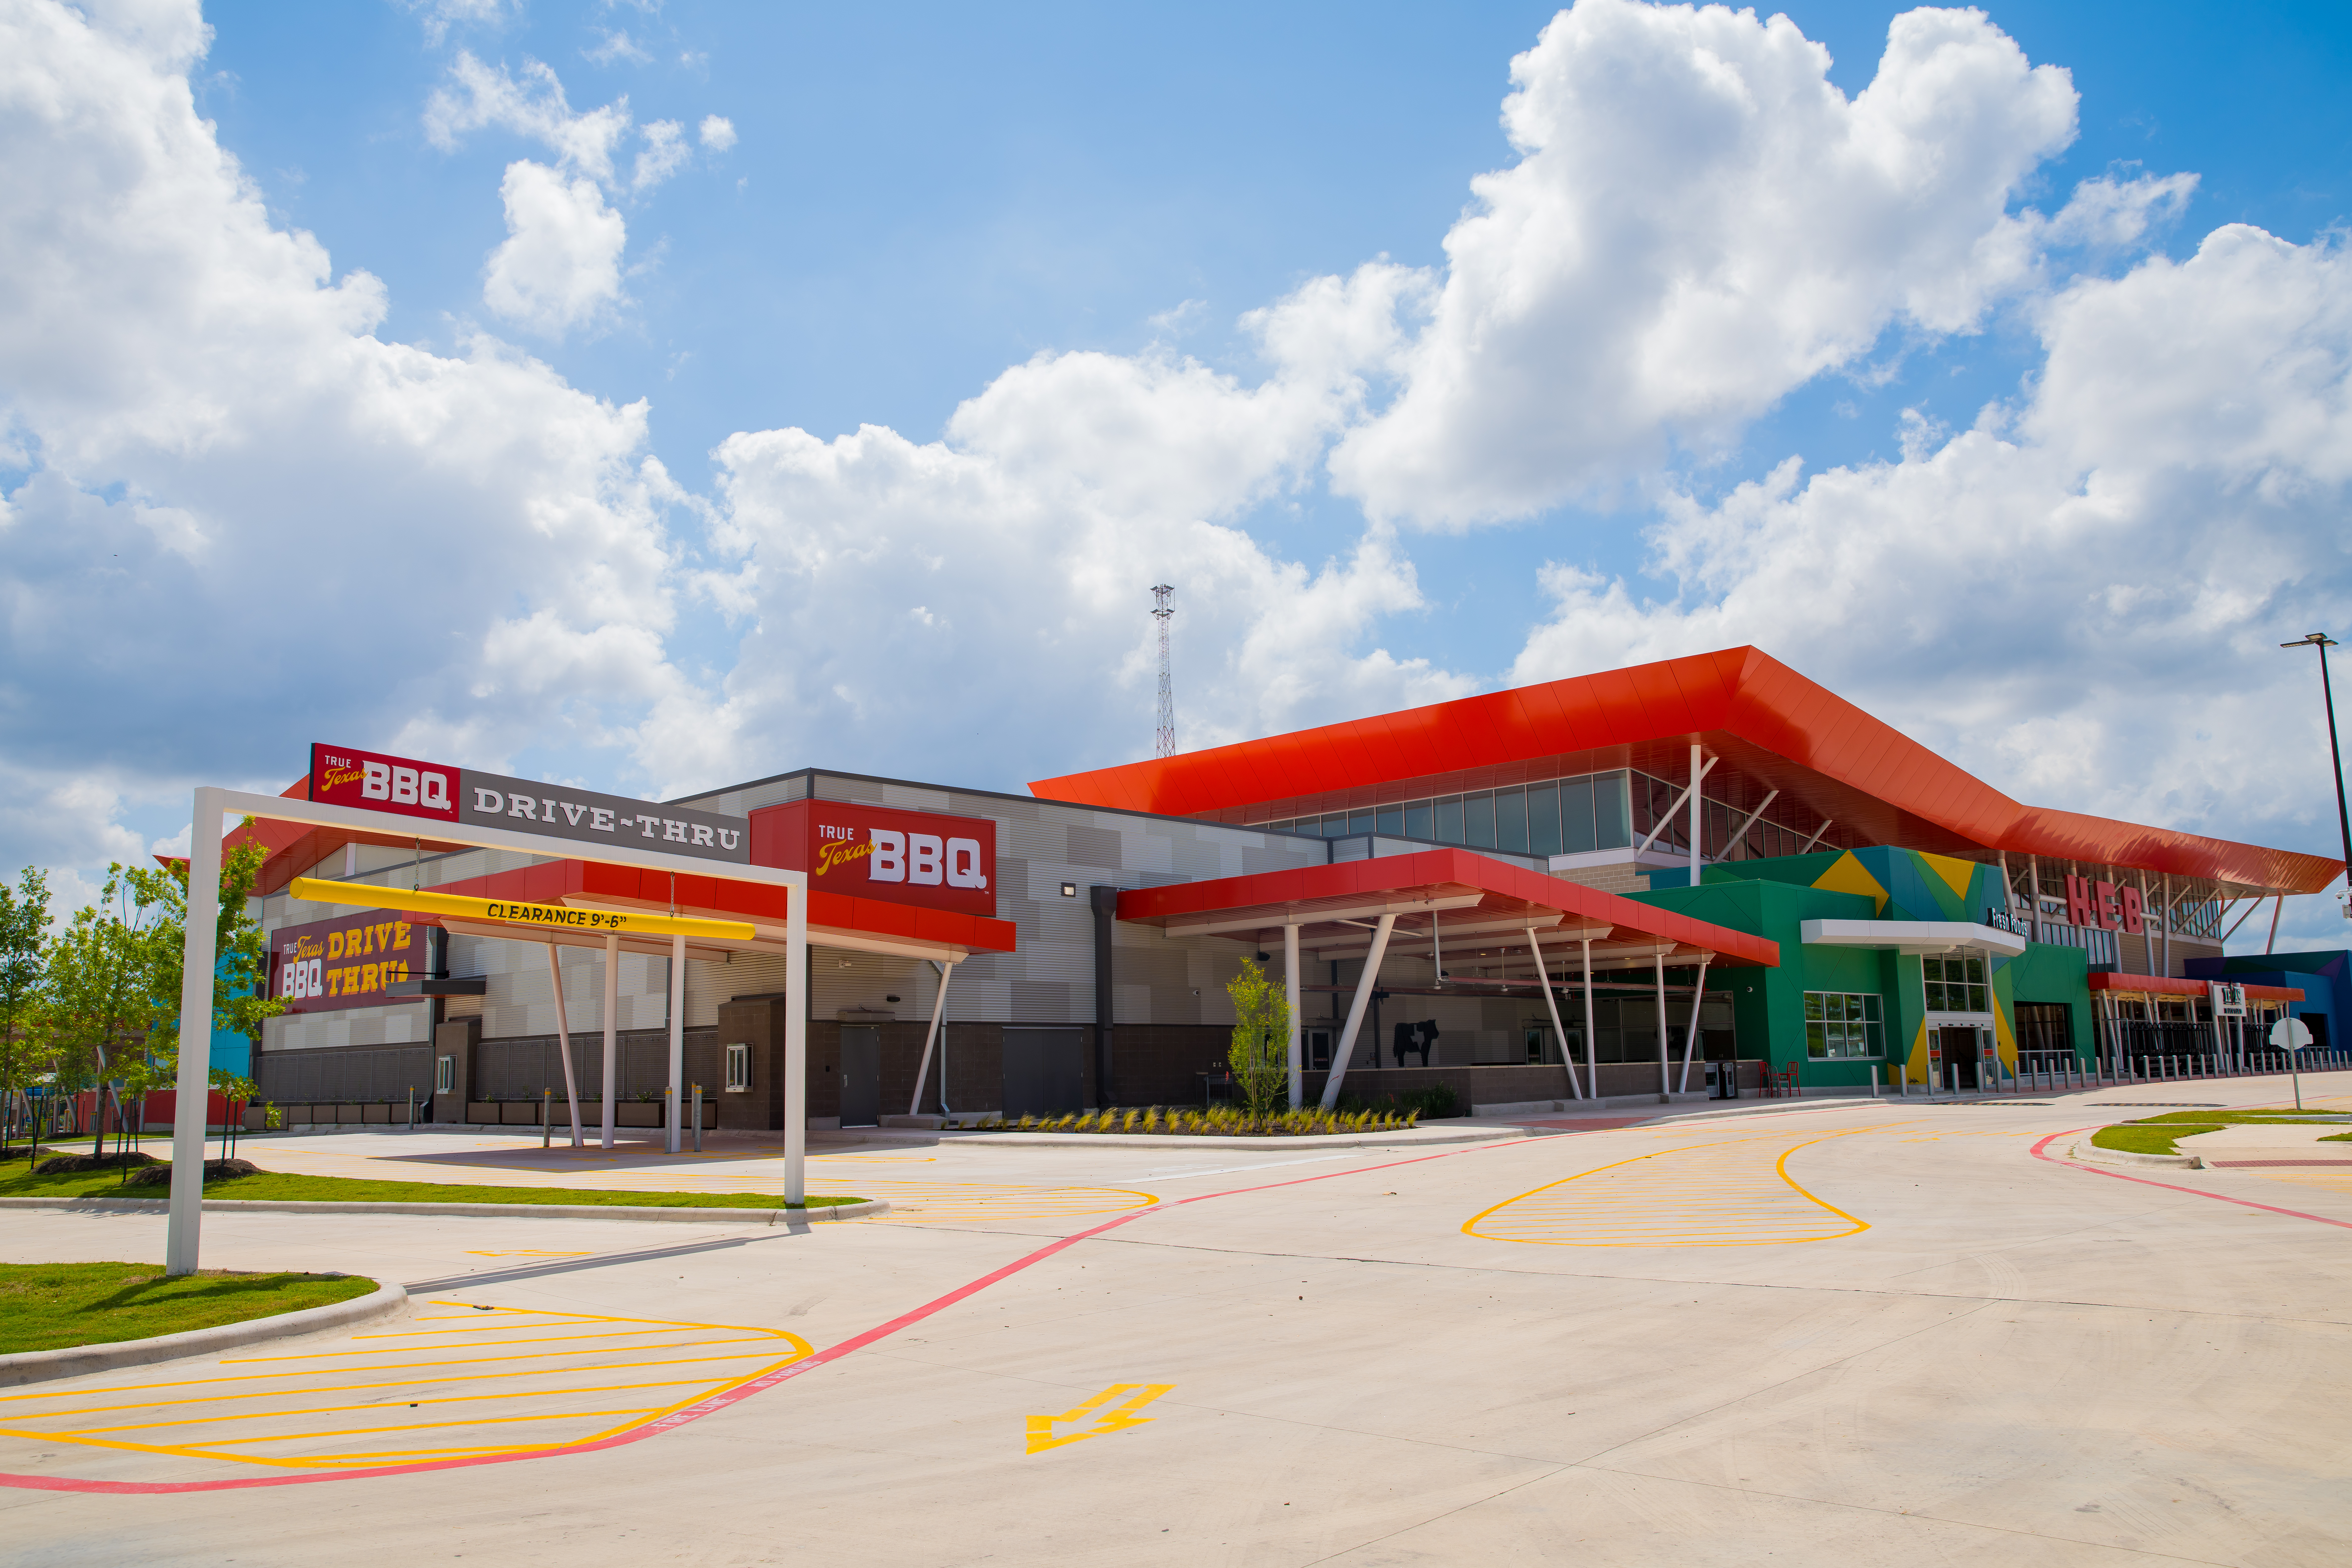 H-E-B opens newest store in South Austin - H-E-B Newsroom